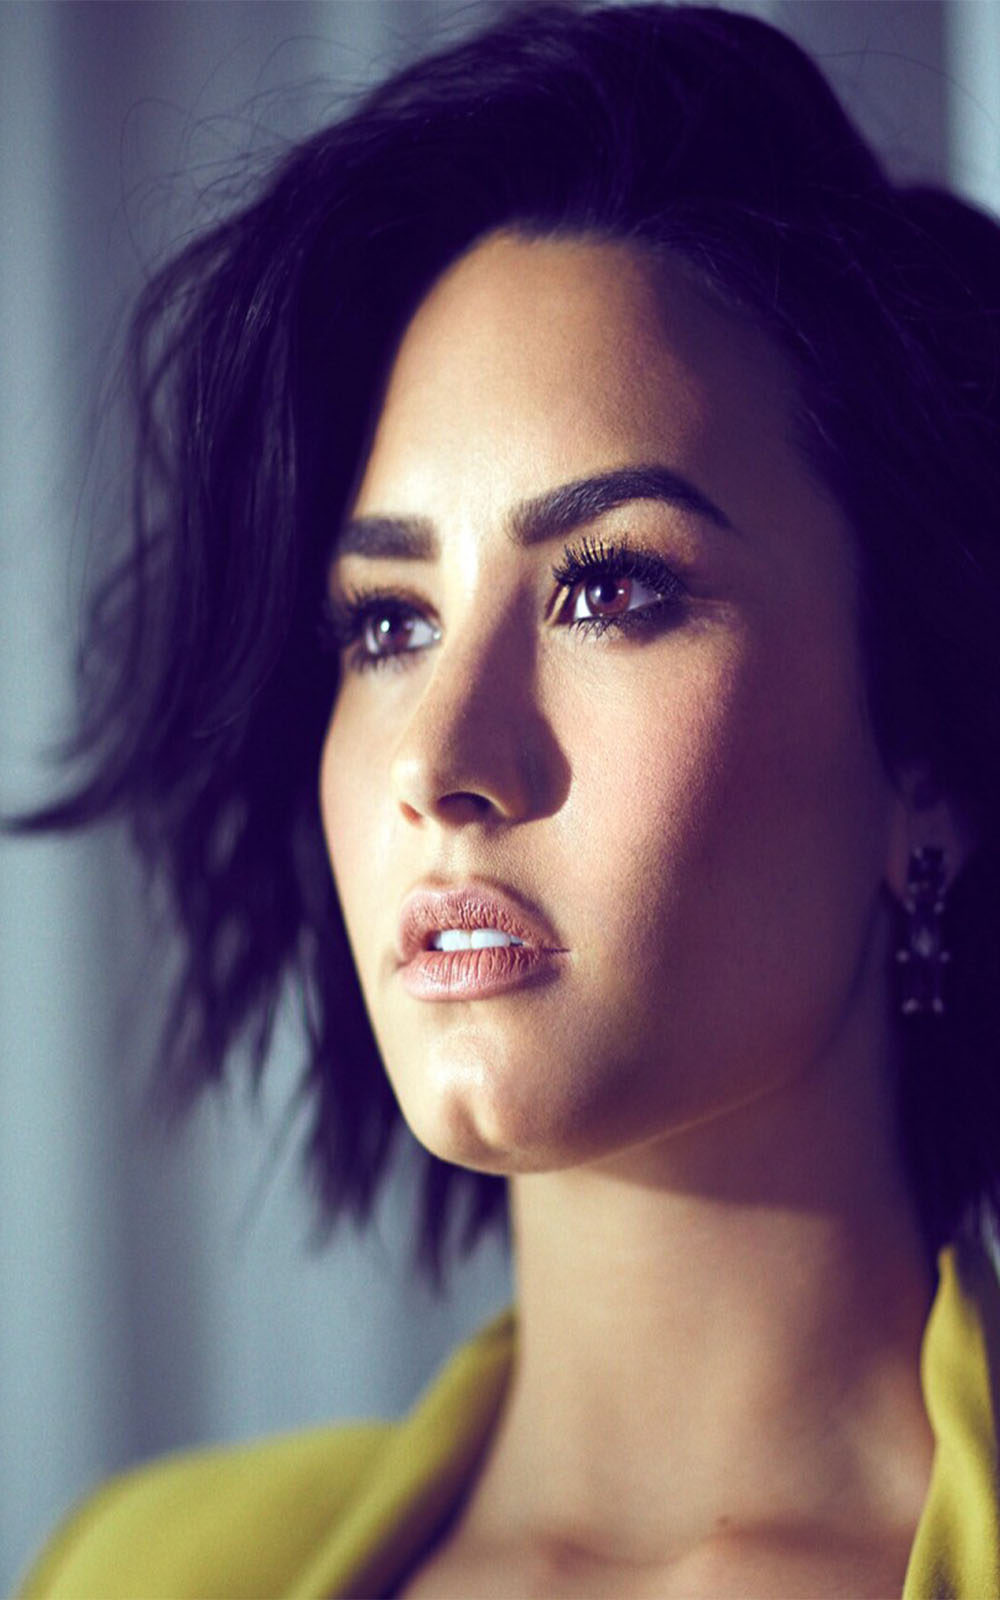 Quotes Wallpaper Hd Mobile Demi Lovato Download Free Hd Mobile Wallpapers